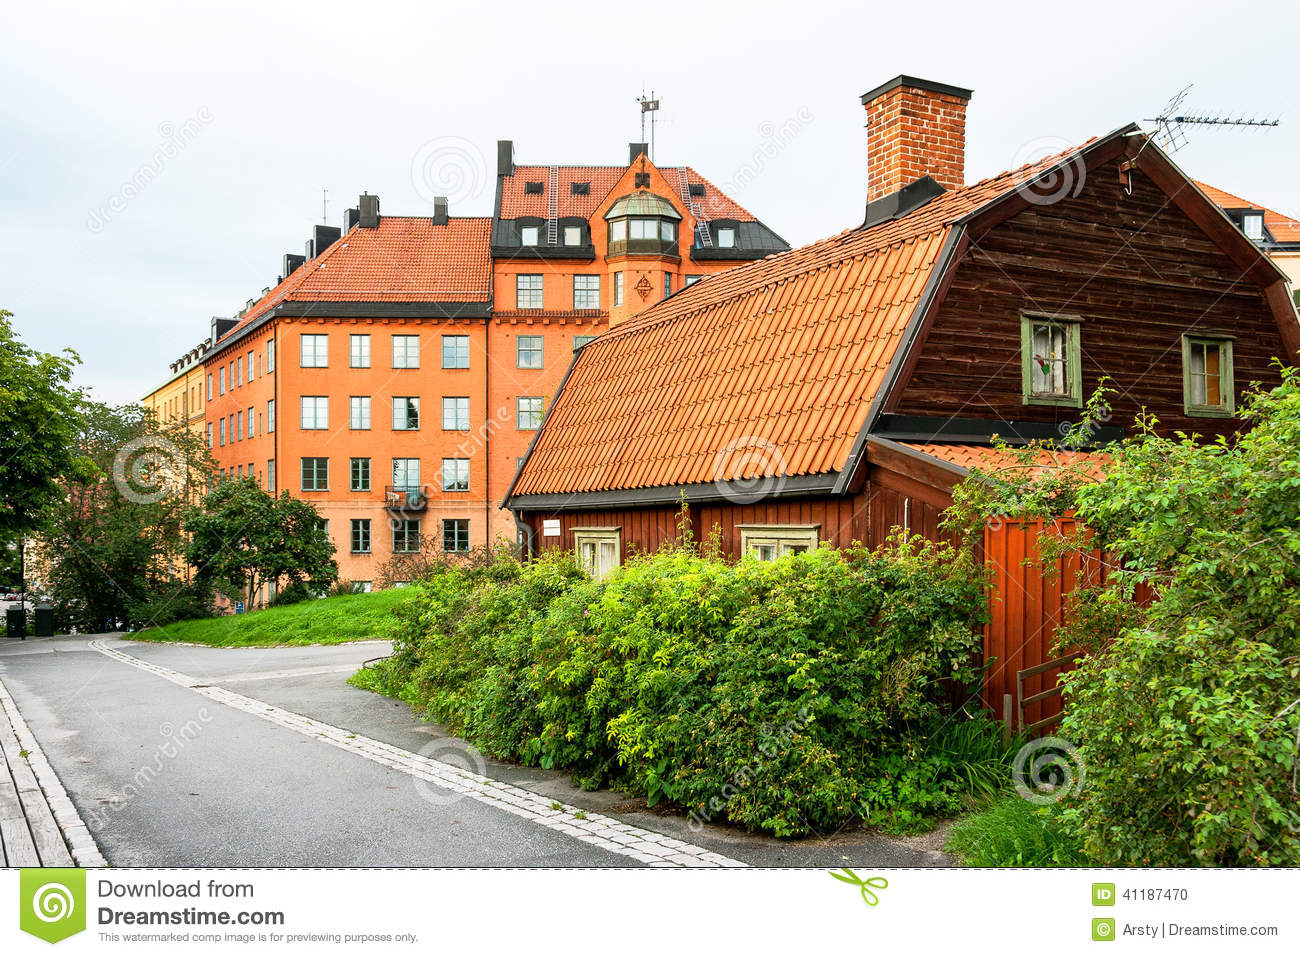 Houses at sodermalm in stockholm sweden stock photo for Vita house